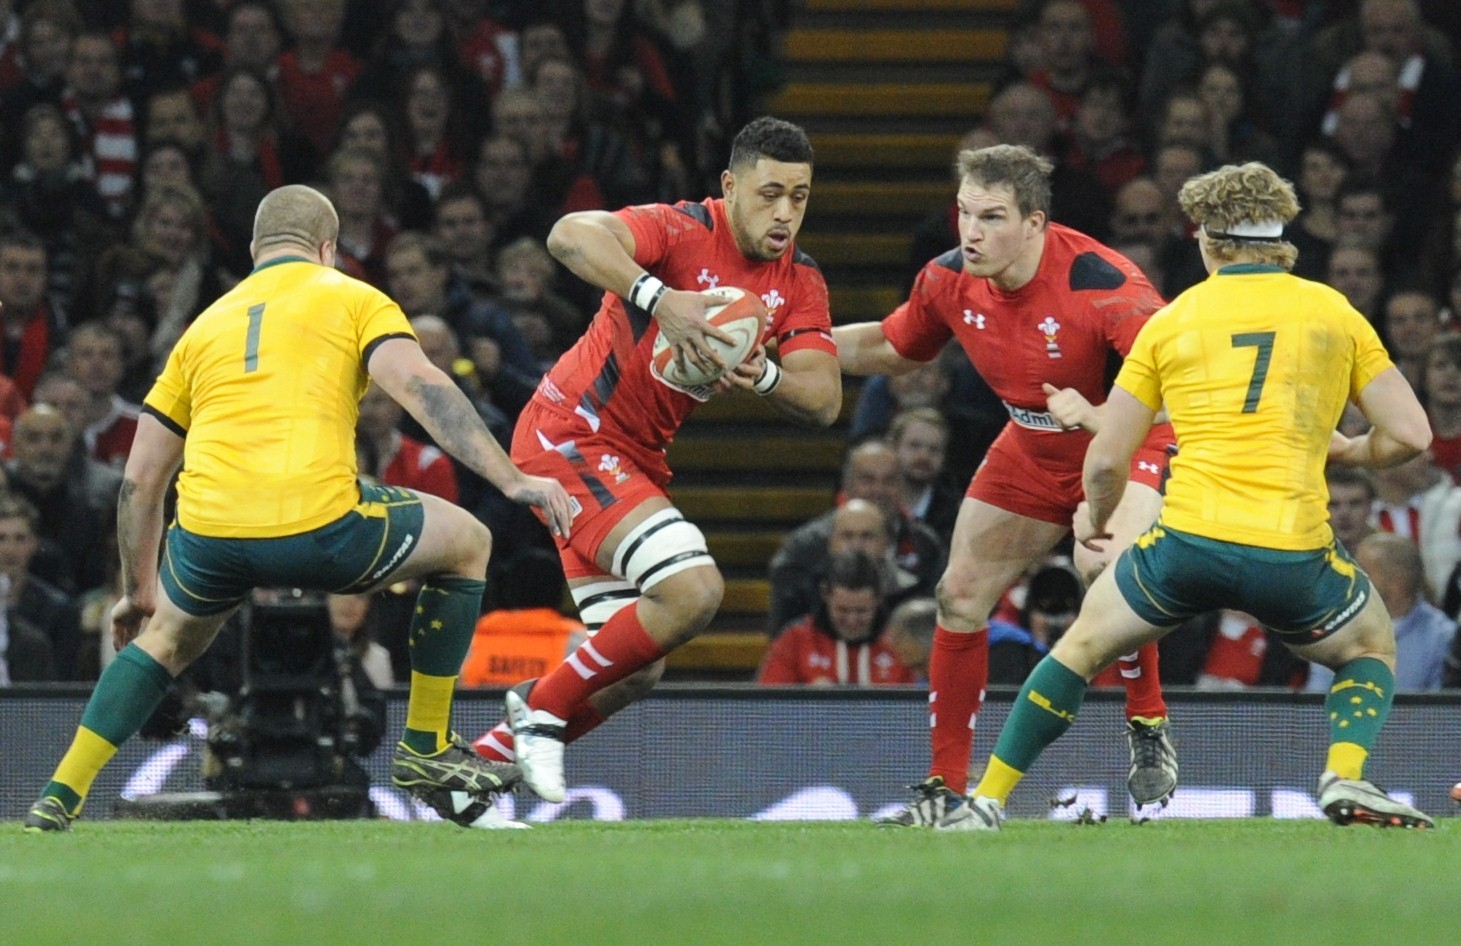 Wait for scalp goes on for impressive Toby Faletau